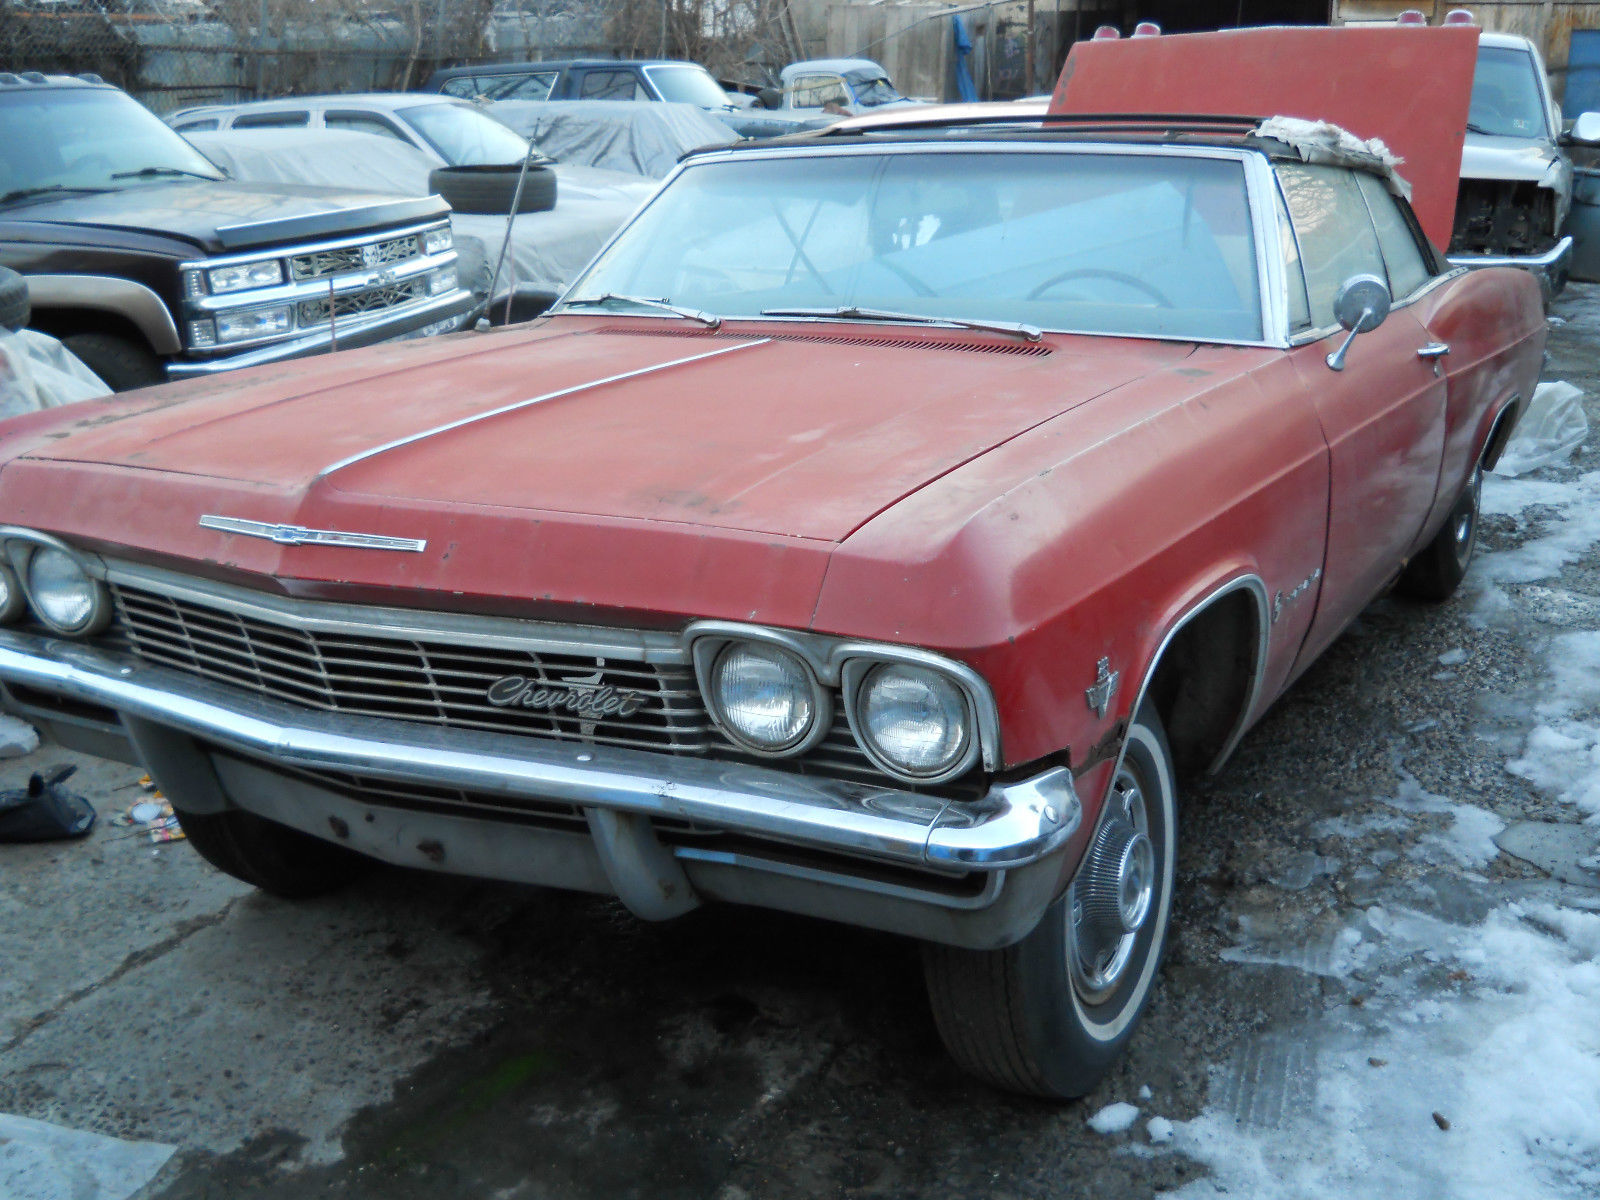 1965 Chevy Convertible (winter project) 65-66-67-68-69 - Classic